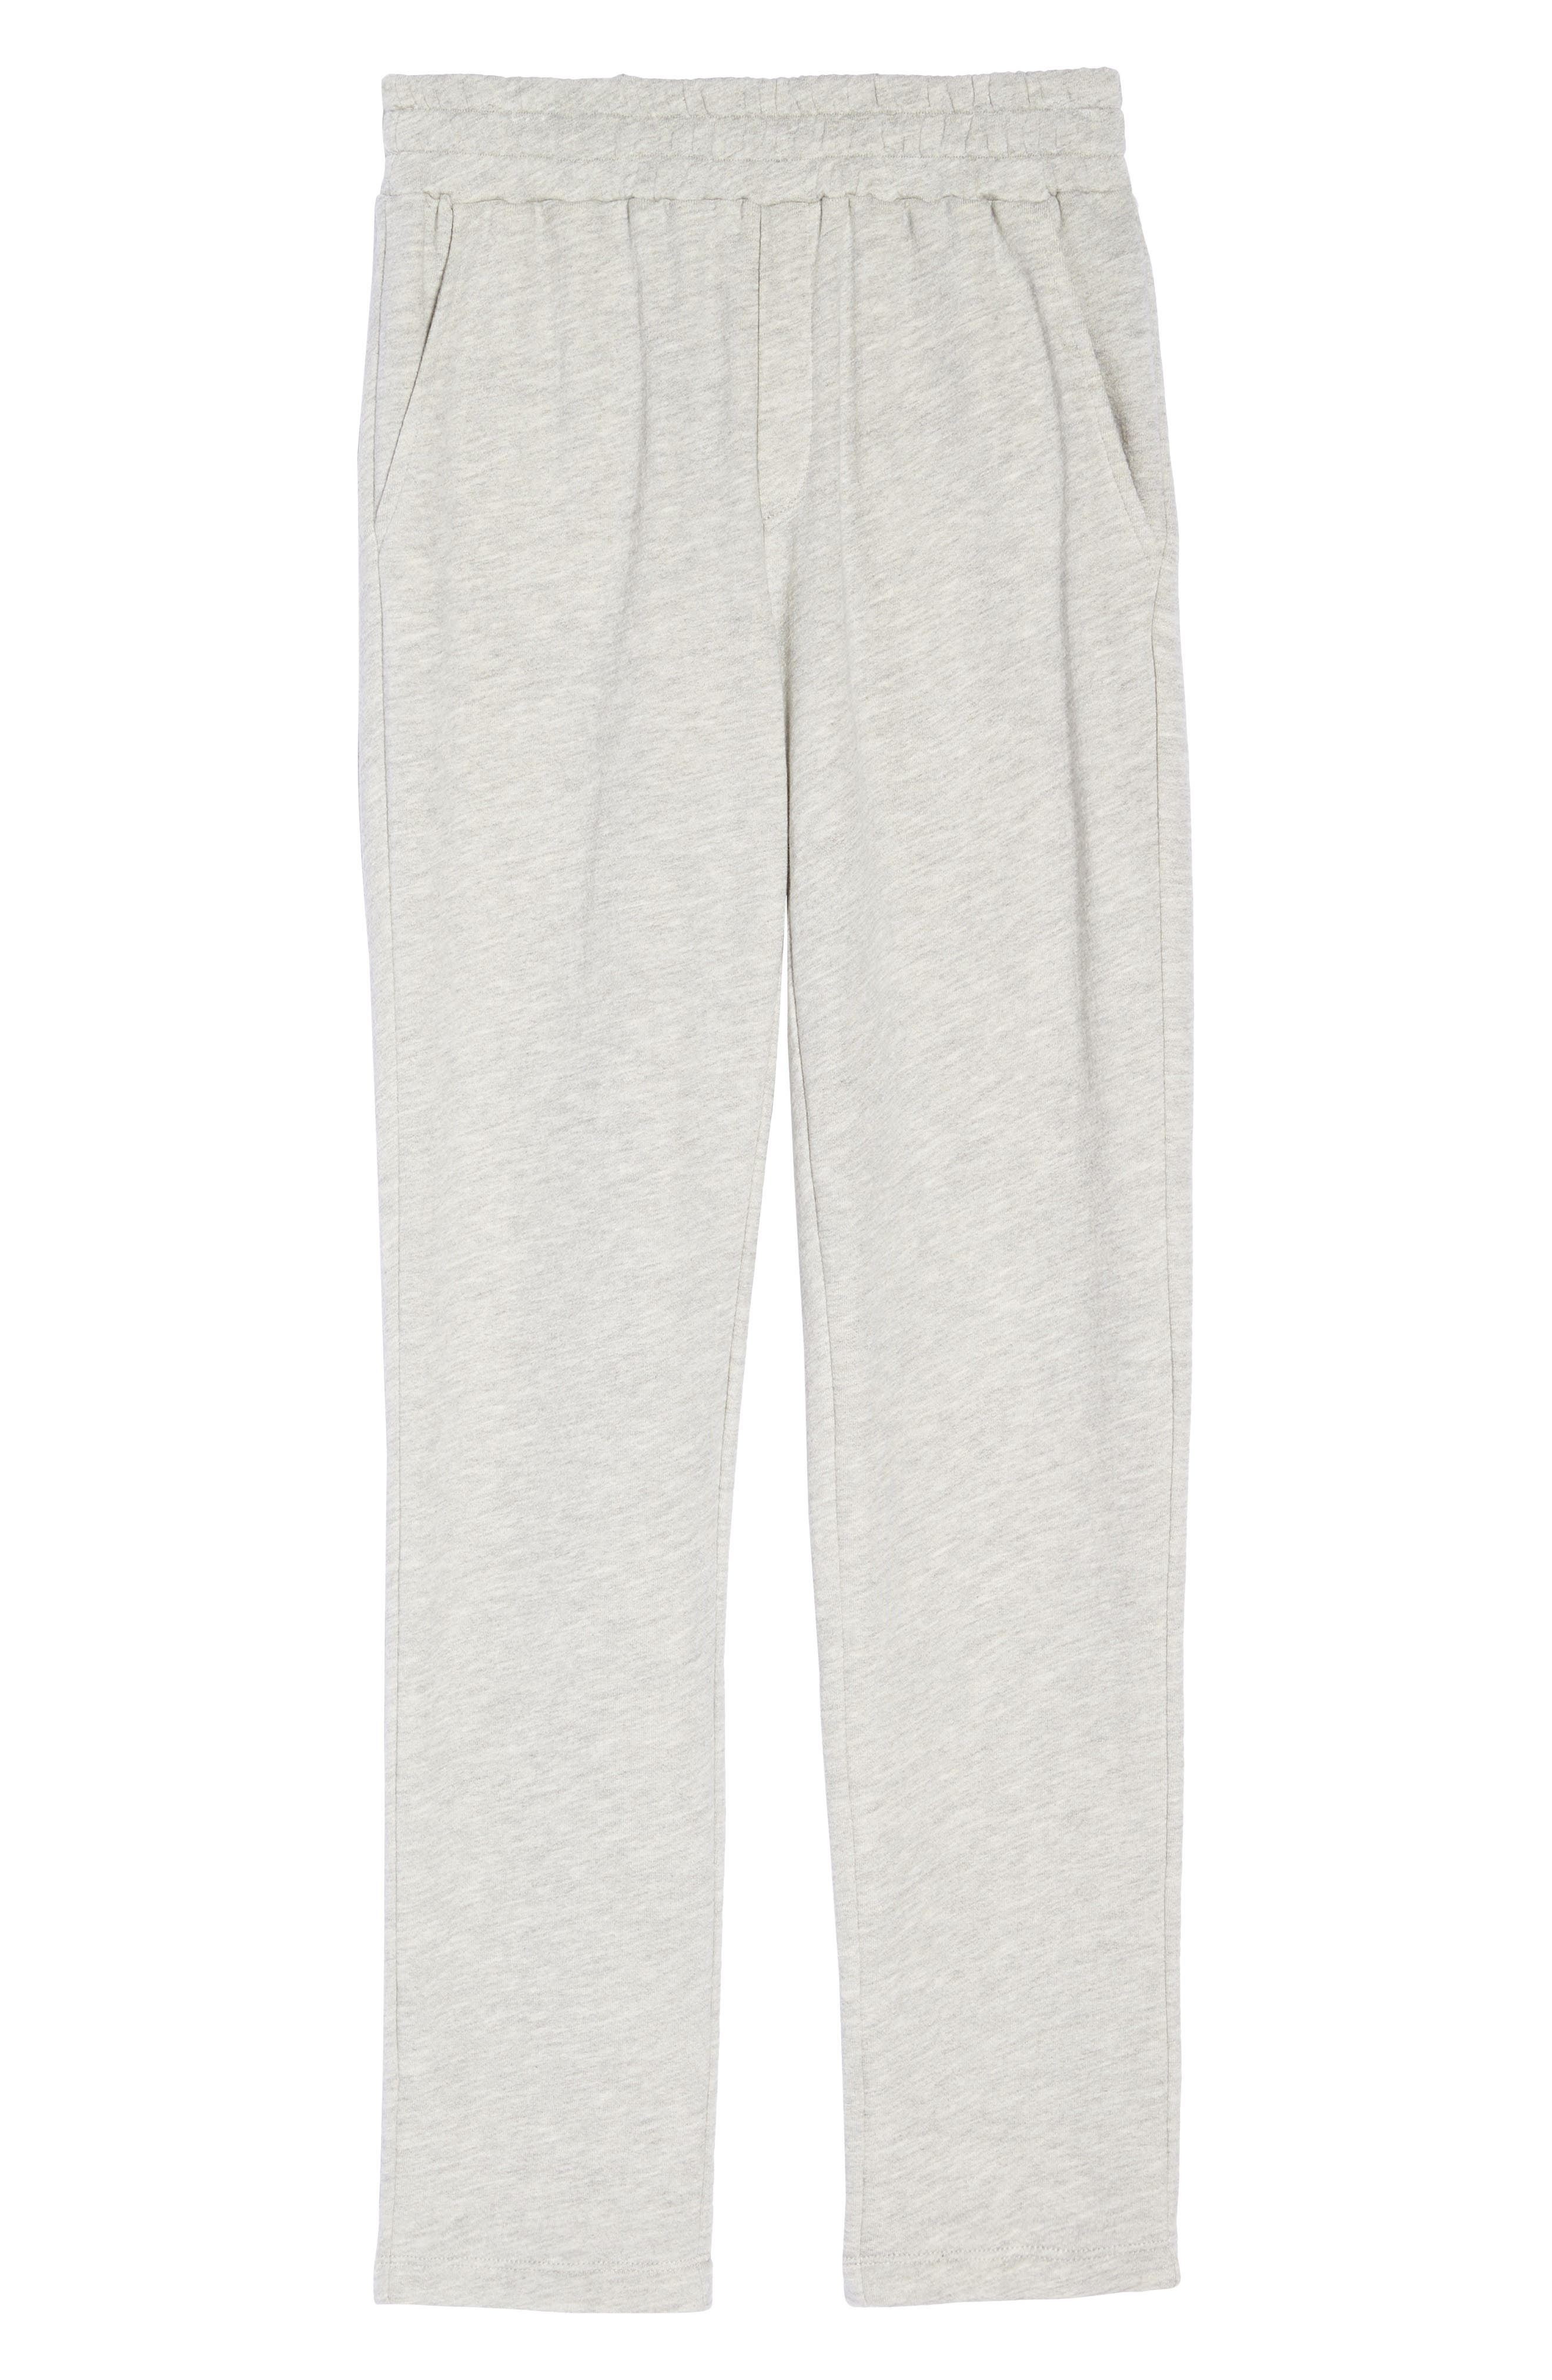 Terry Pajama Pants,                             Alternate thumbnail 4, color,                             Grey Terry